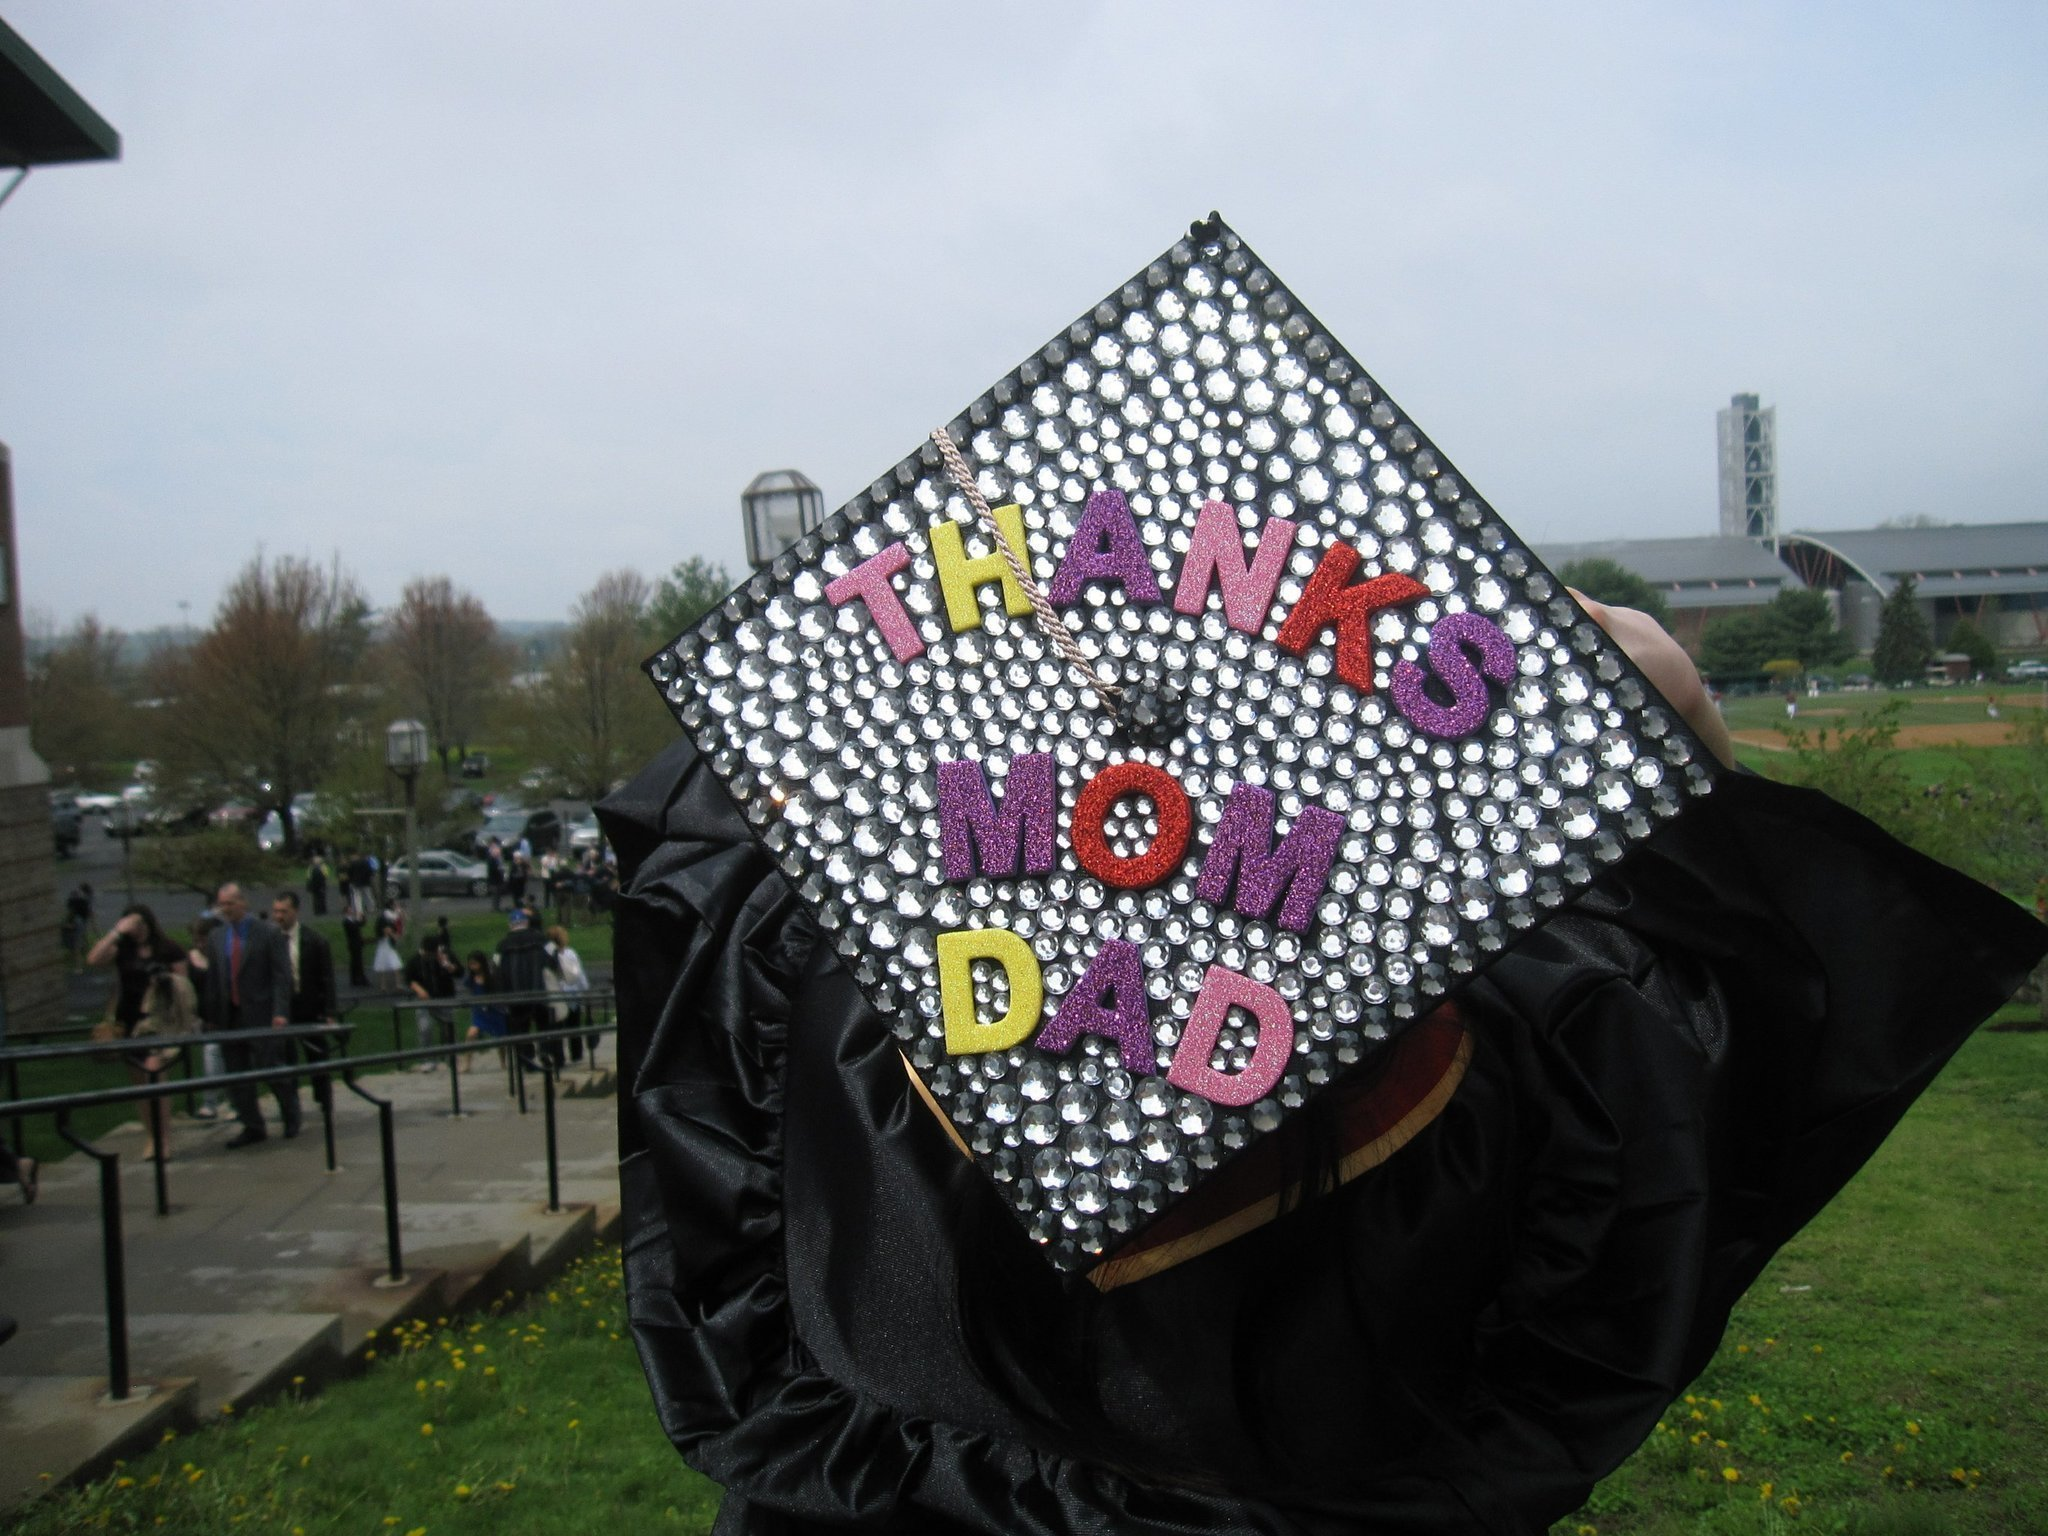 Want to stand out in cap and gown? Decorate the mortarboard - The ...